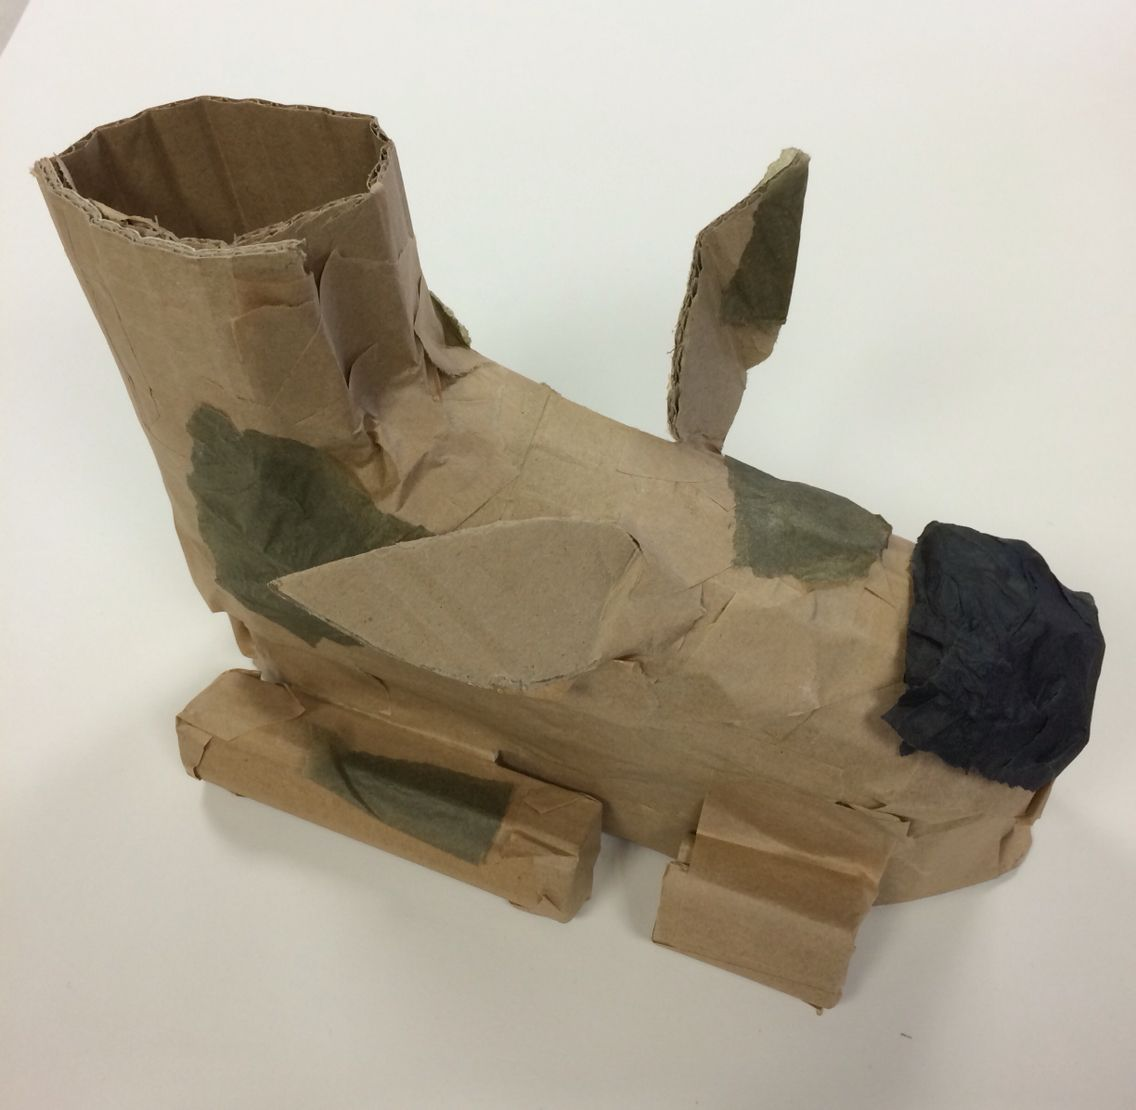 Surreal Shoe made from card,  gum strip and tissue paper. St Mary's Catholic High School 2016.